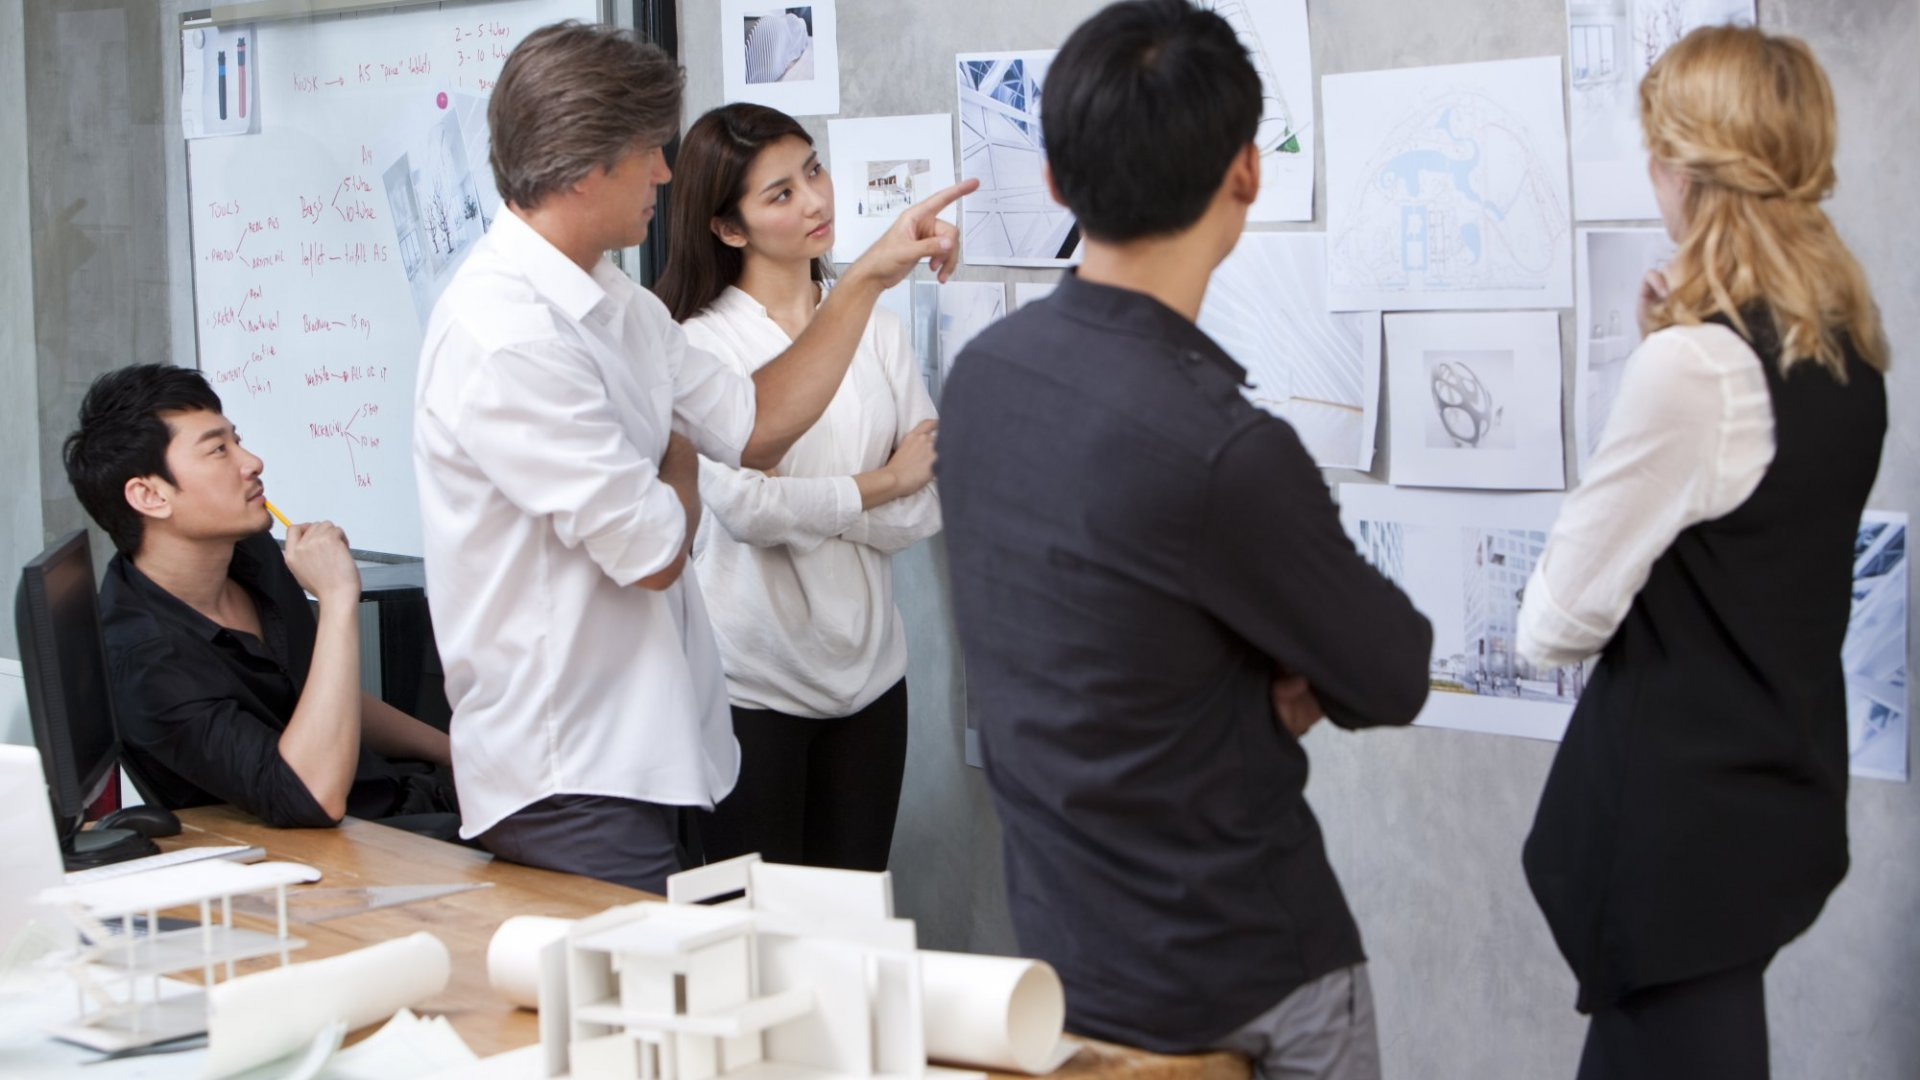 Designing Your Business: 5 Keys to Growth